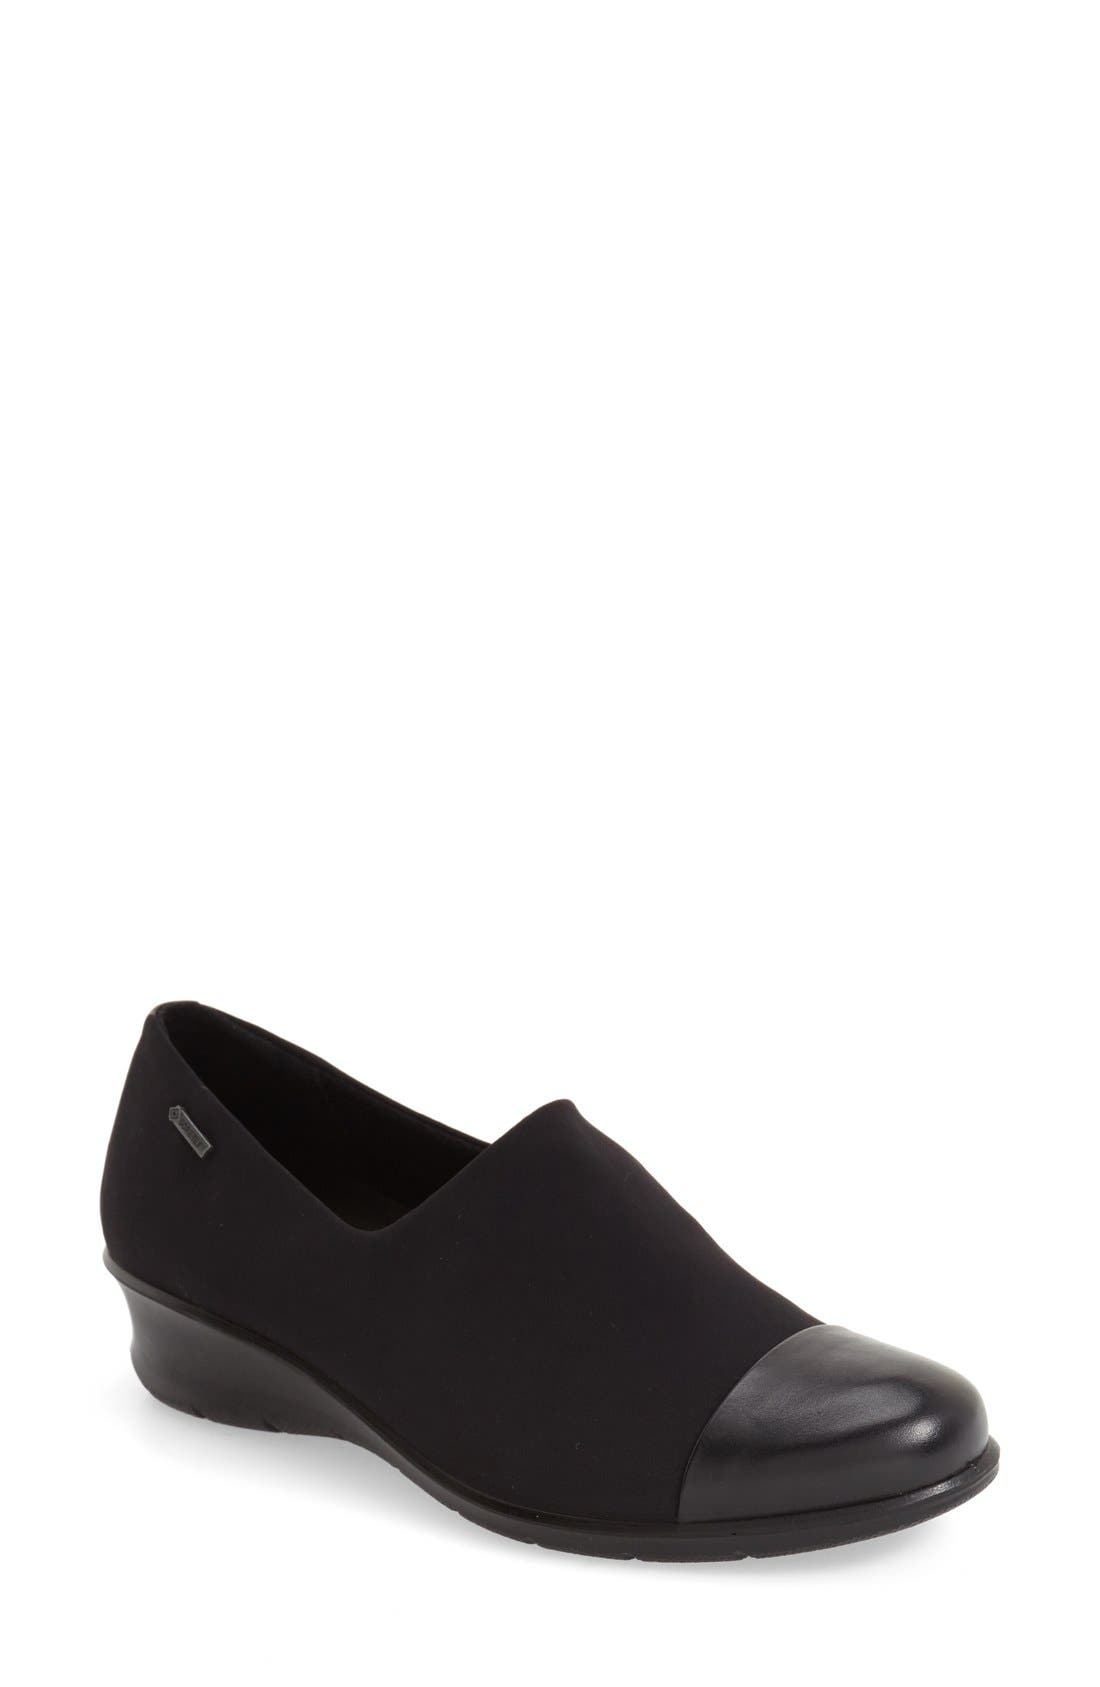 ECCO 'Felicia GTX' Waterproof Wedge Loafer